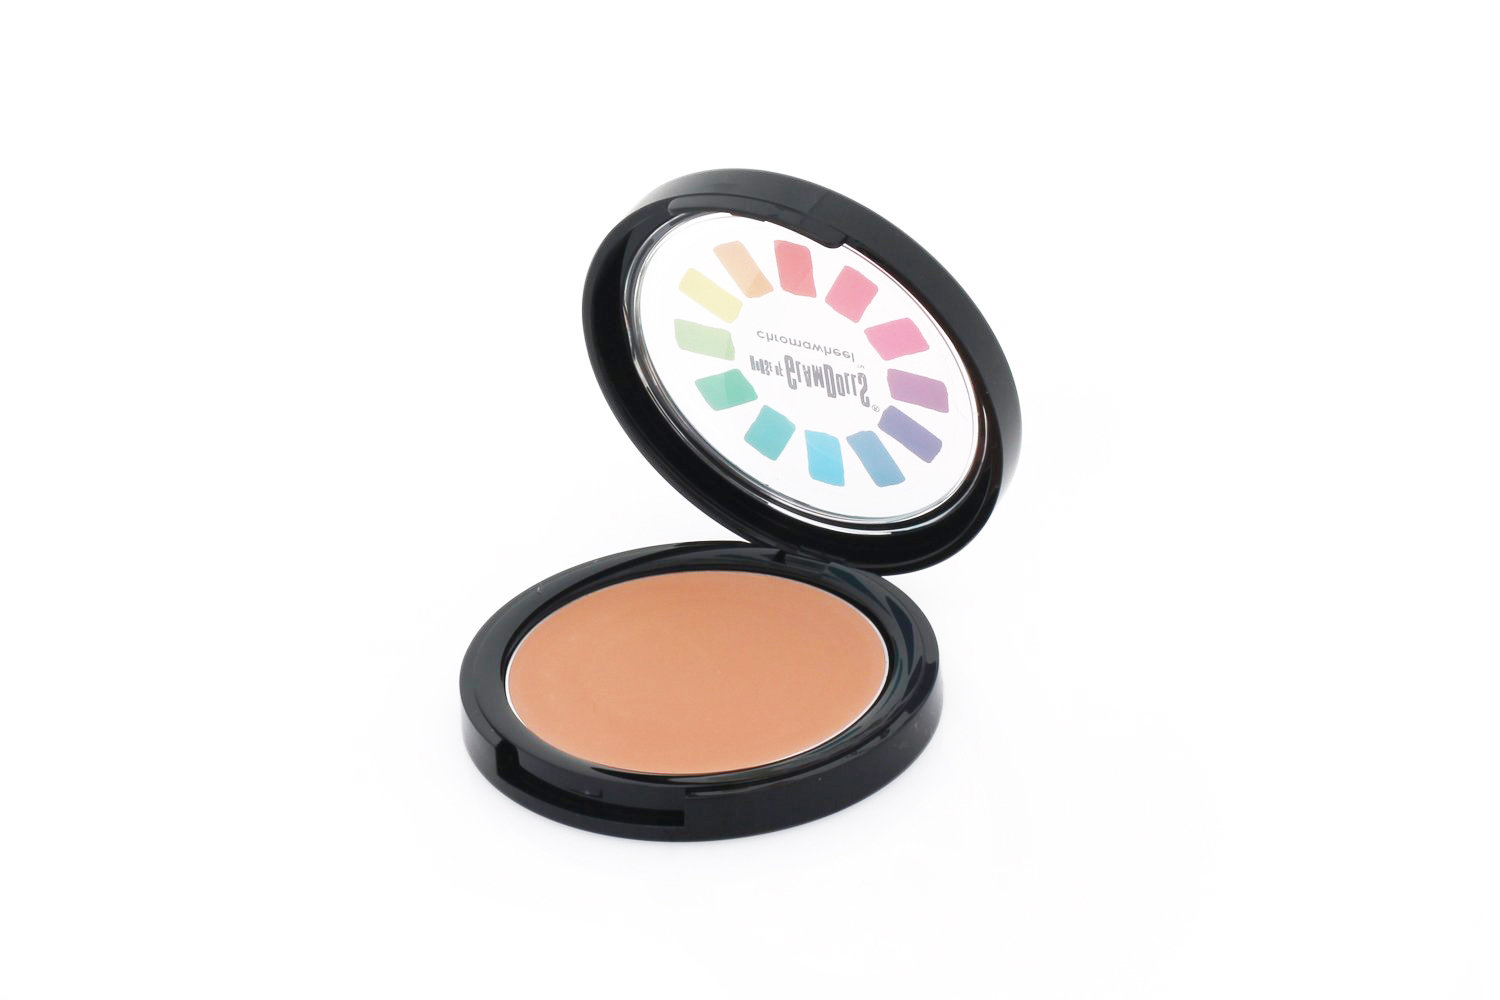 Retouch M3 - buildable cream camouflage and retouching concealer